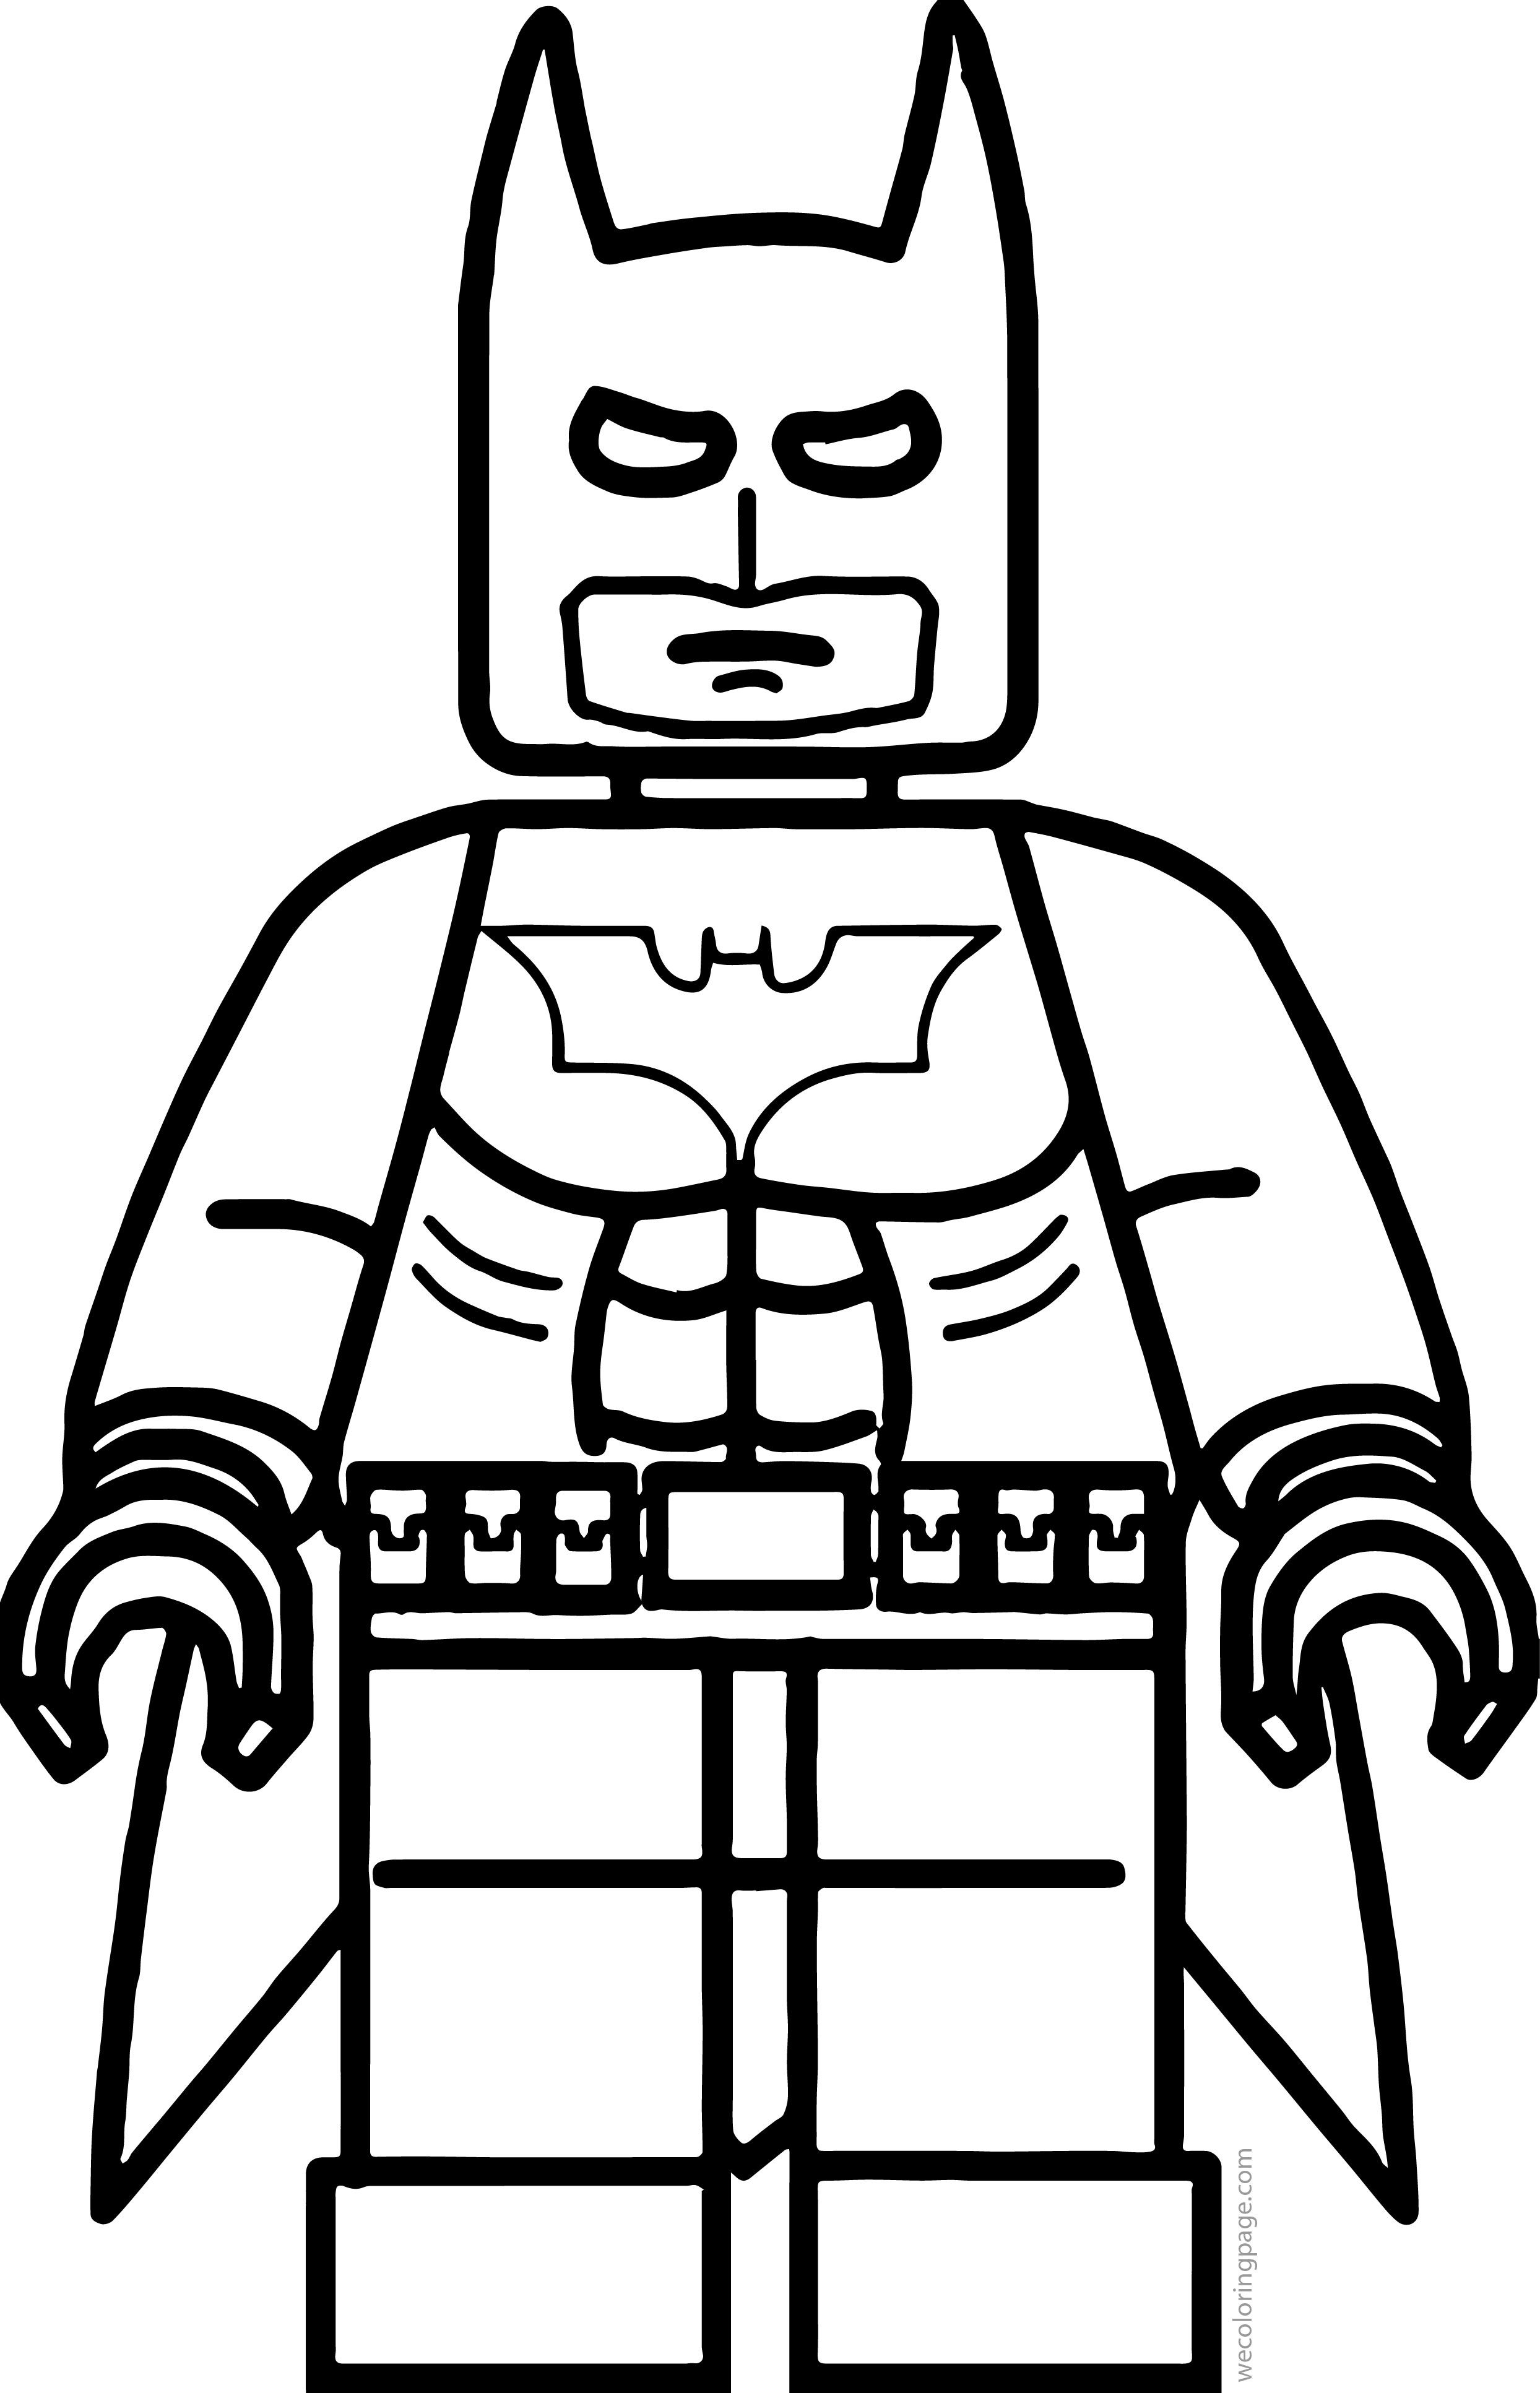 Lego Batman Coloring Pages Activity For Kids Lego